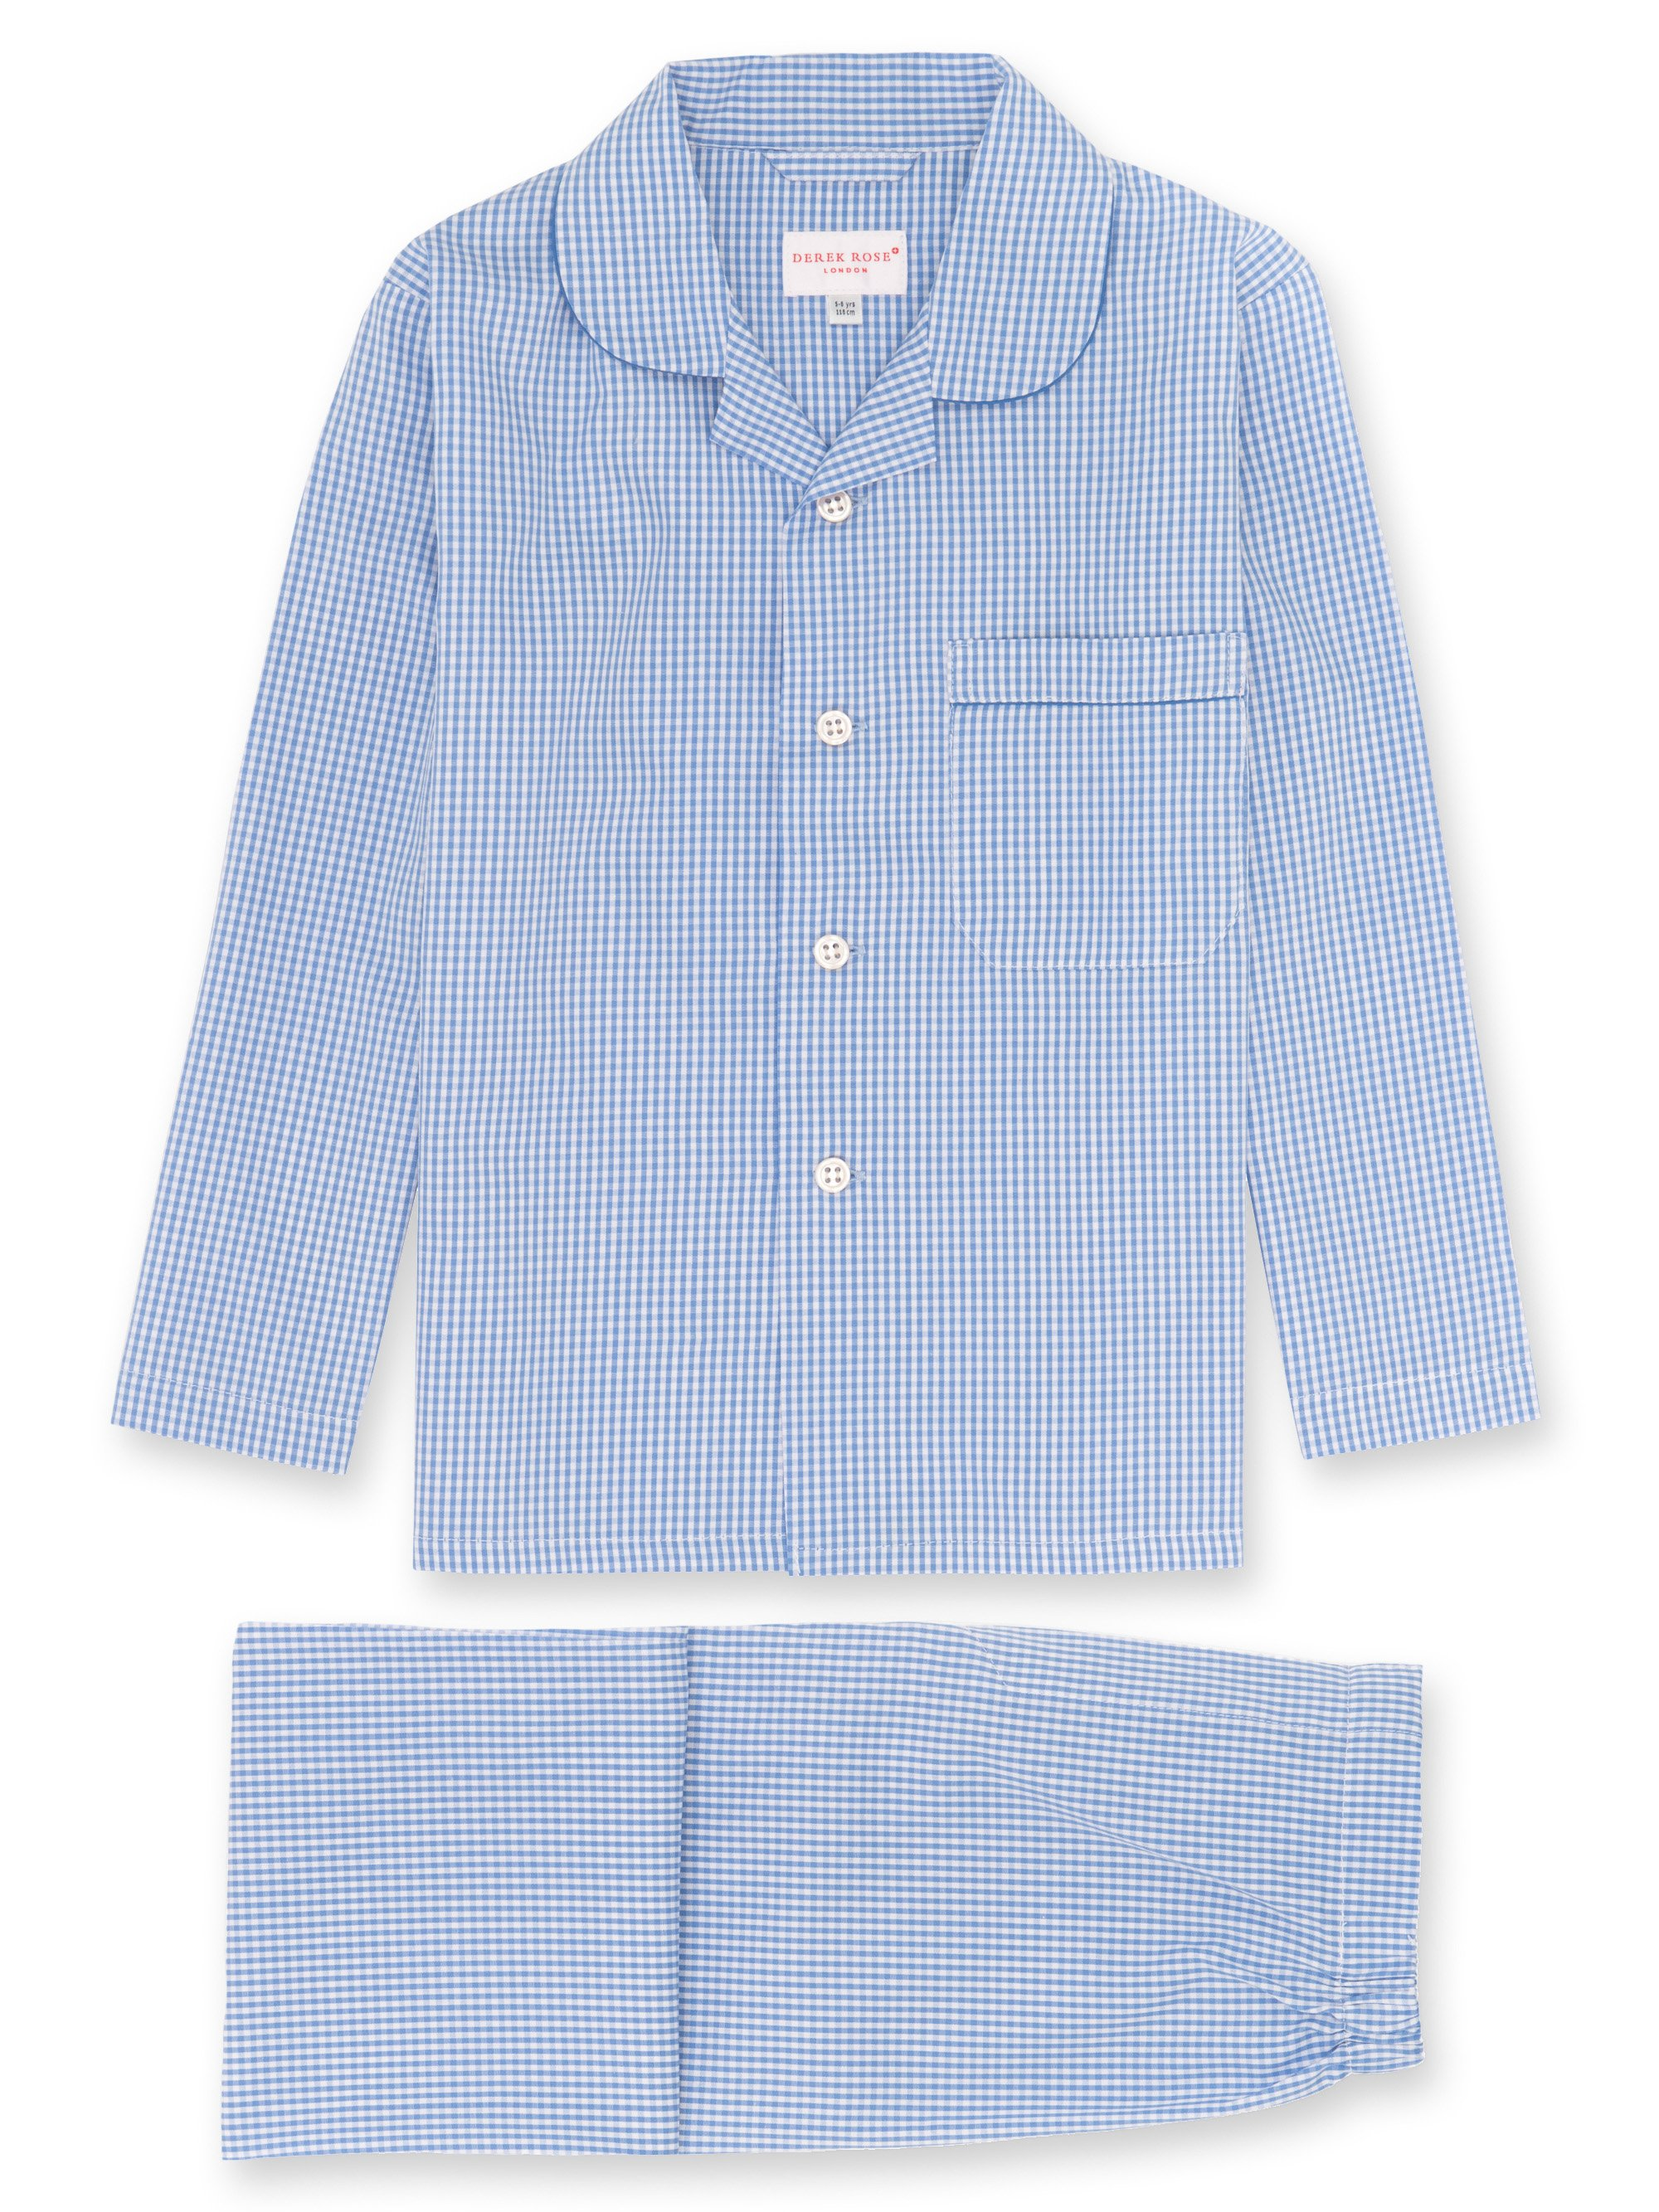 Boys' Pyjamas Gingham Cotton Check Blue